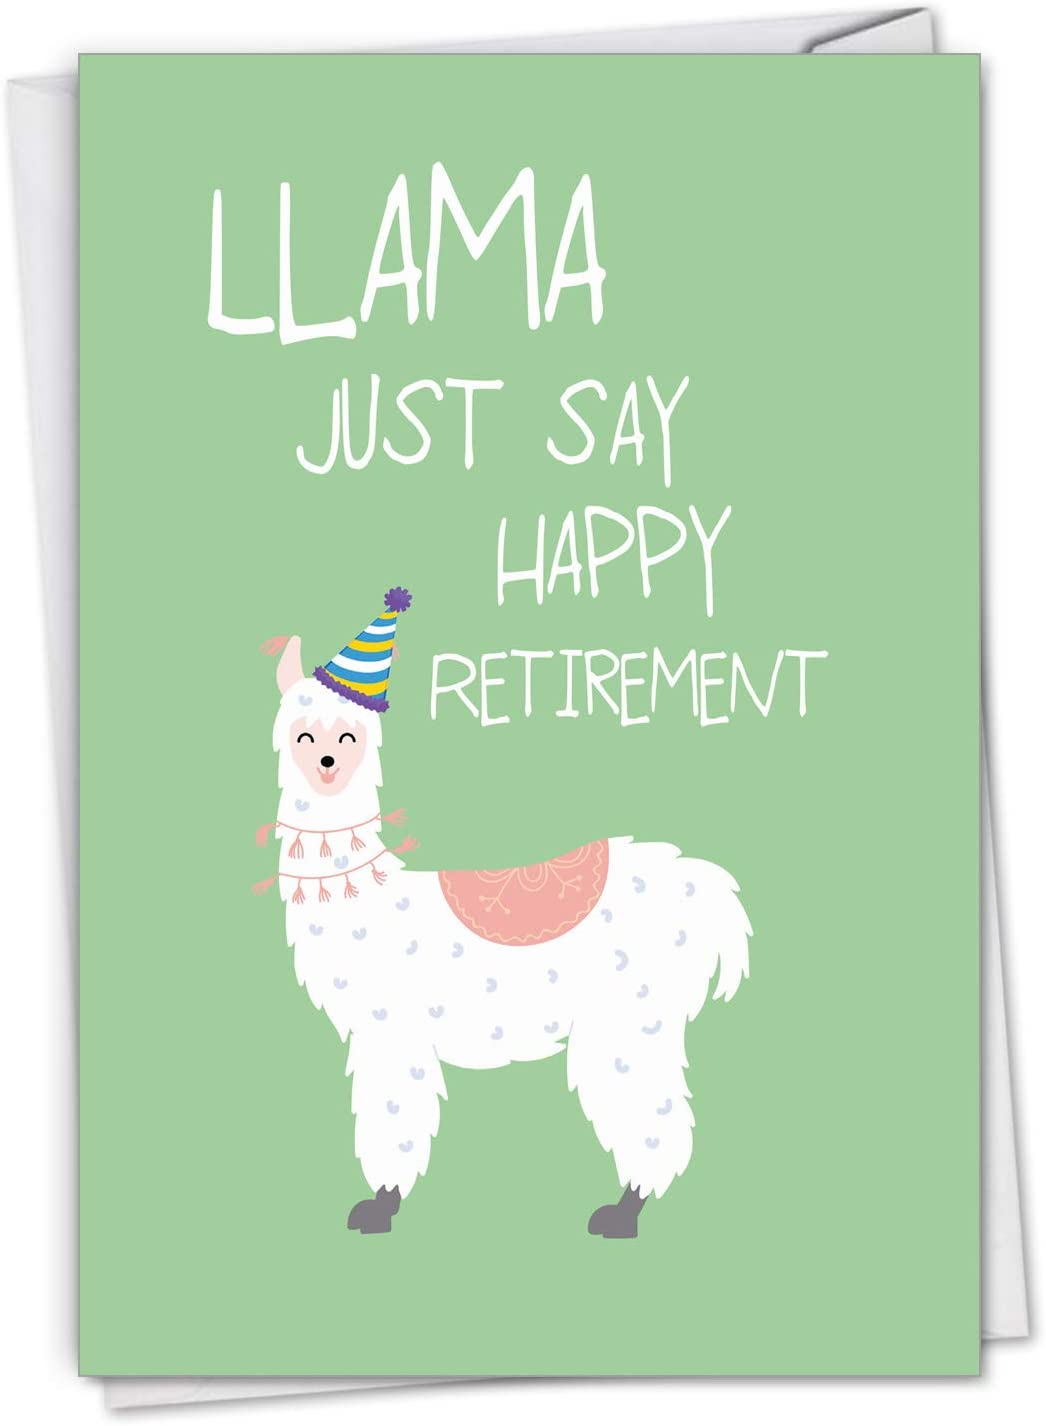 The Best Card Llama Just Say - Retirement Greeting Card with Envelope (4.63 x 6.75 Inch) Presenting an Honest Saying by a Kind Fuzzy Beast C6445ARTG